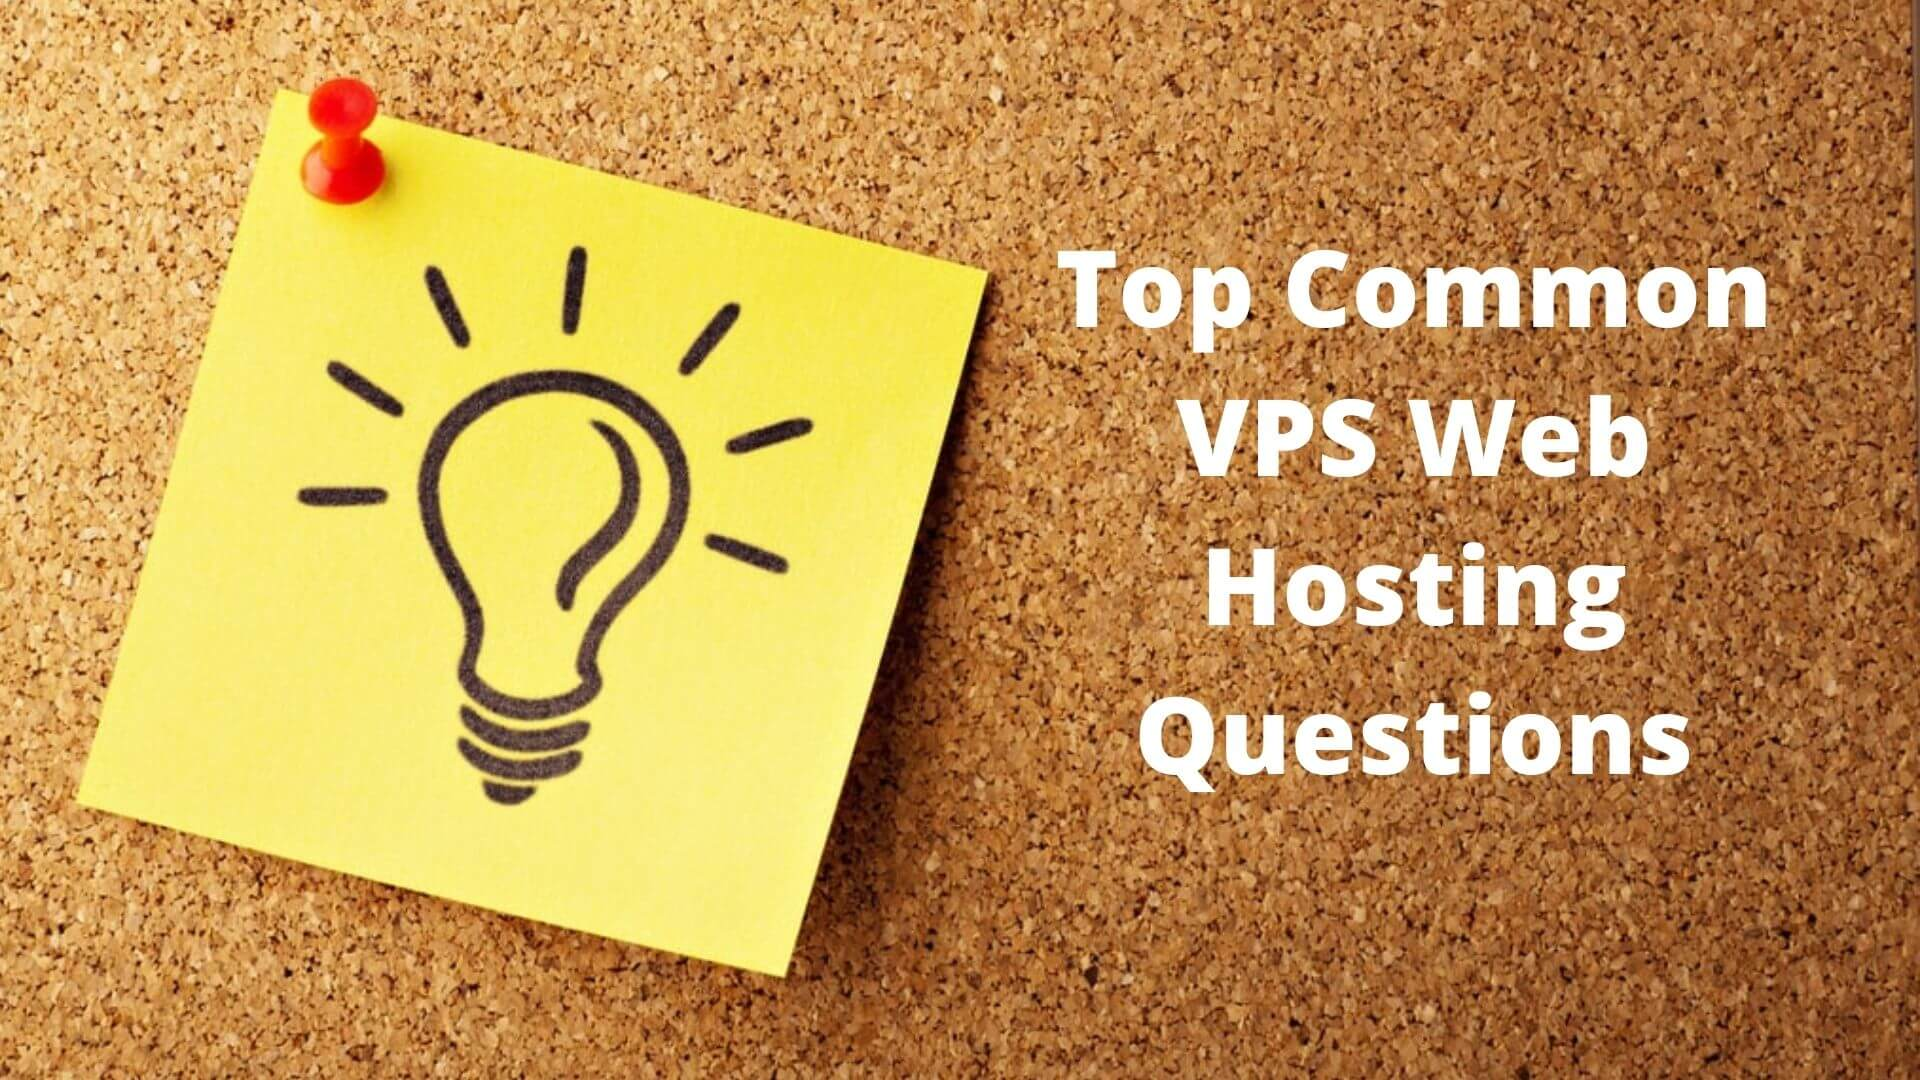 Top-Common-VPS-Web-Hosting-Questions-1